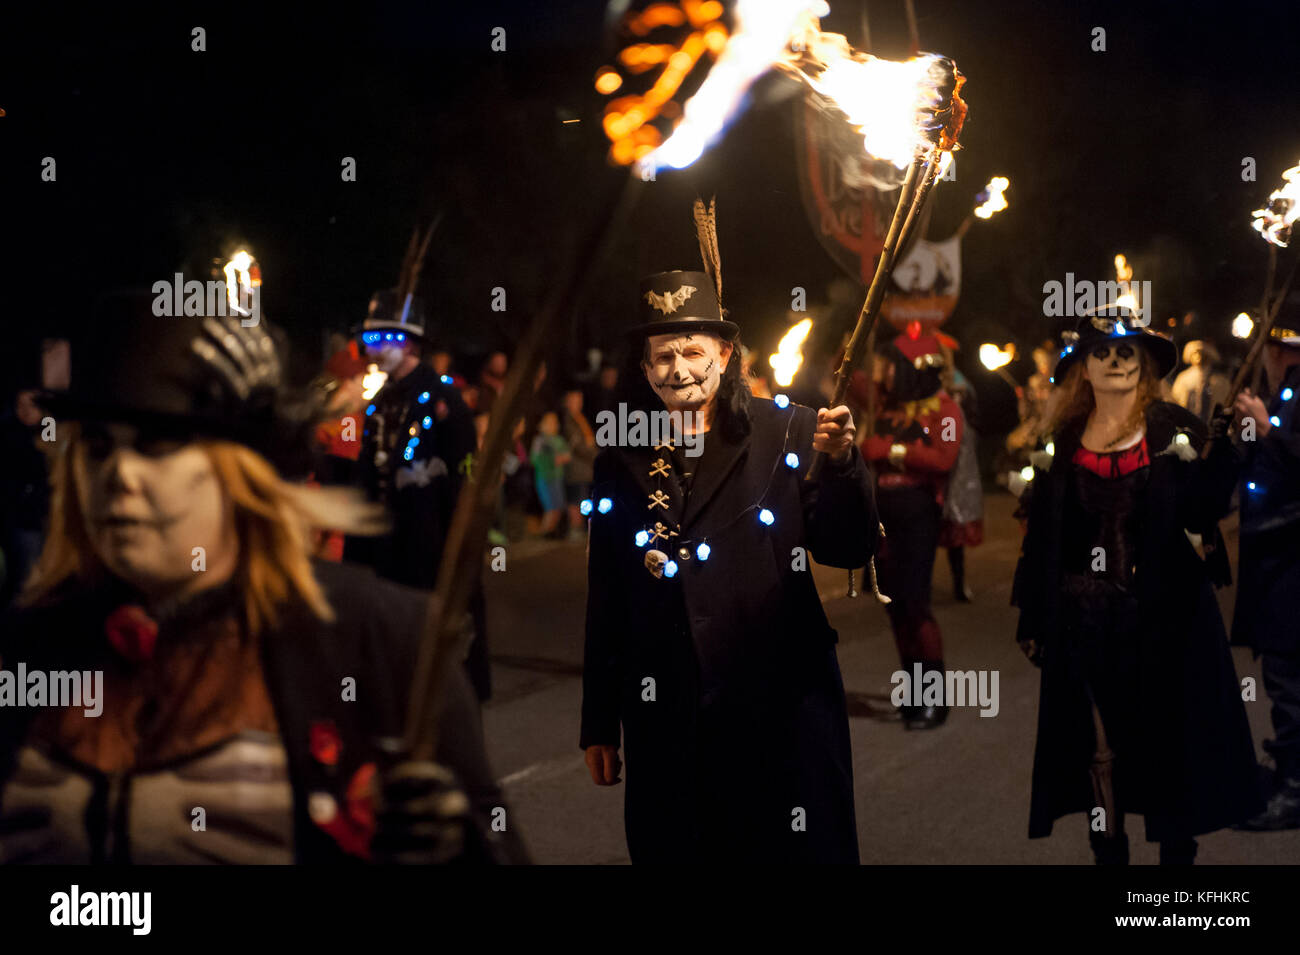 Bonfire Night Celebrations In West Sussex. Dressed in elaborate costumes and holding flaming torches members of Stock Photo